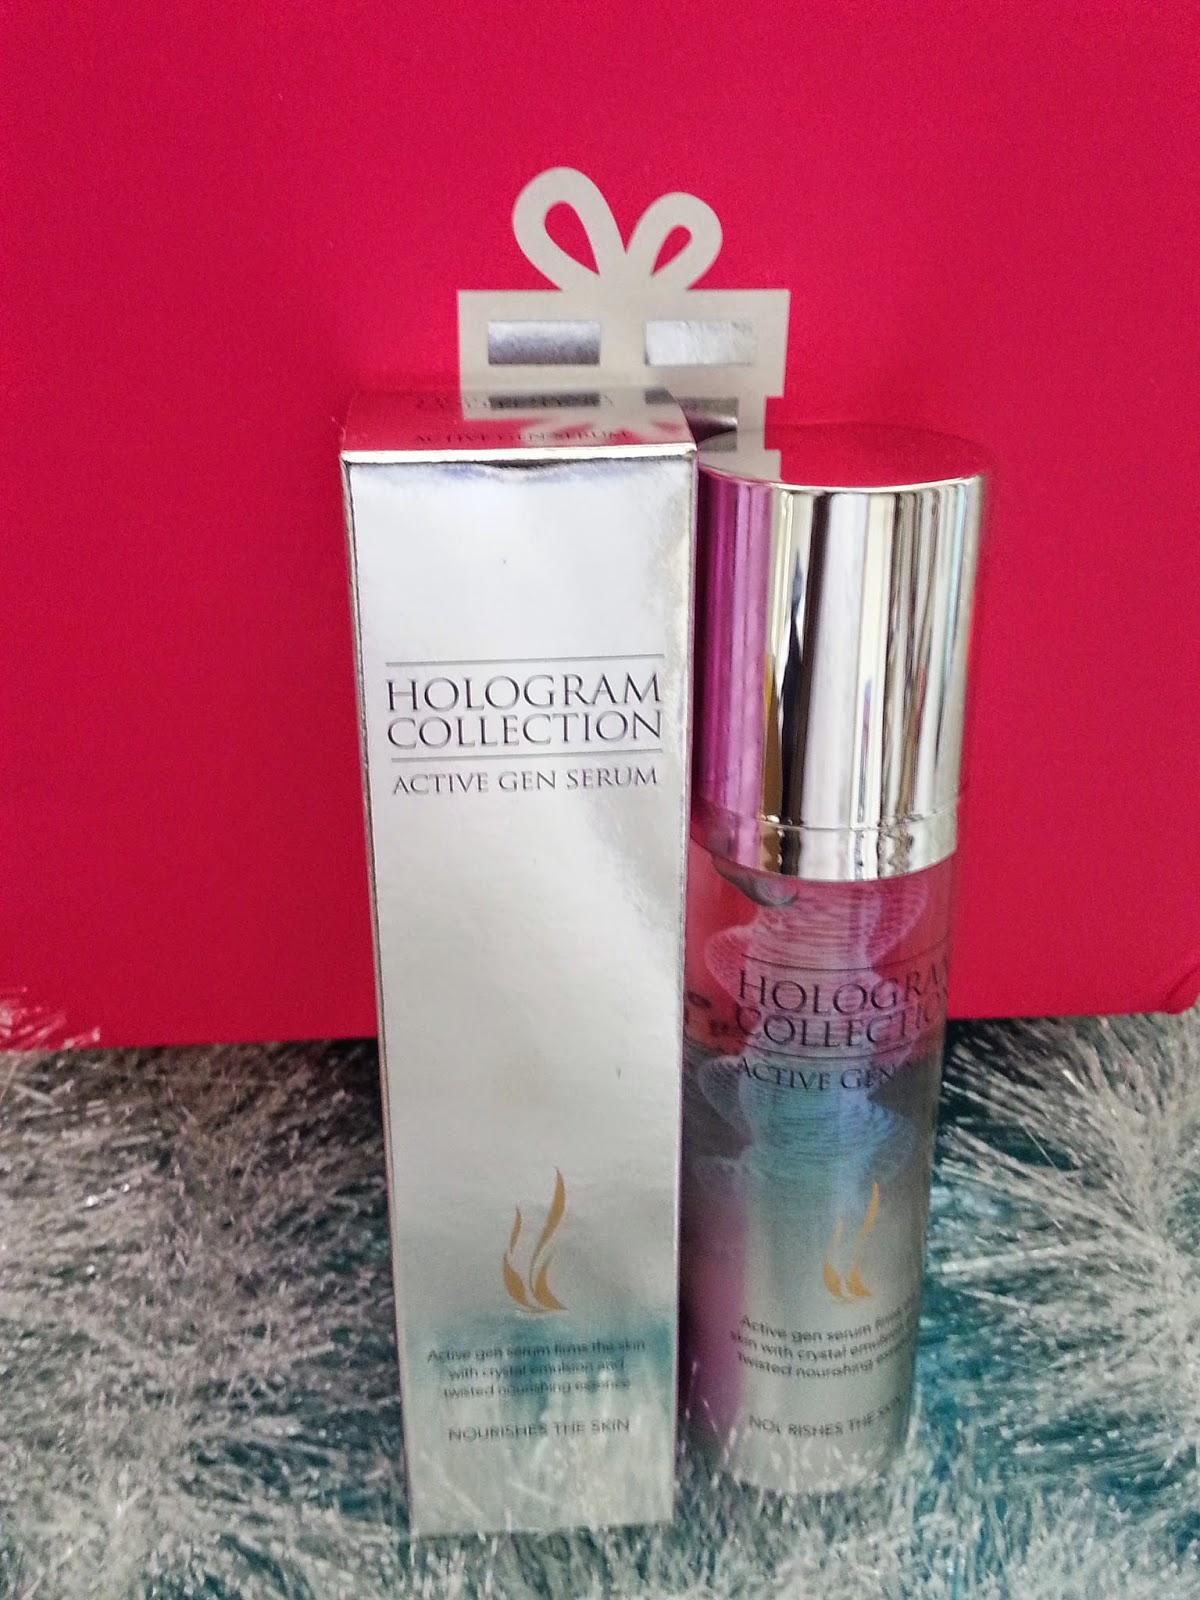 AHC Hologram Active Gen Serum